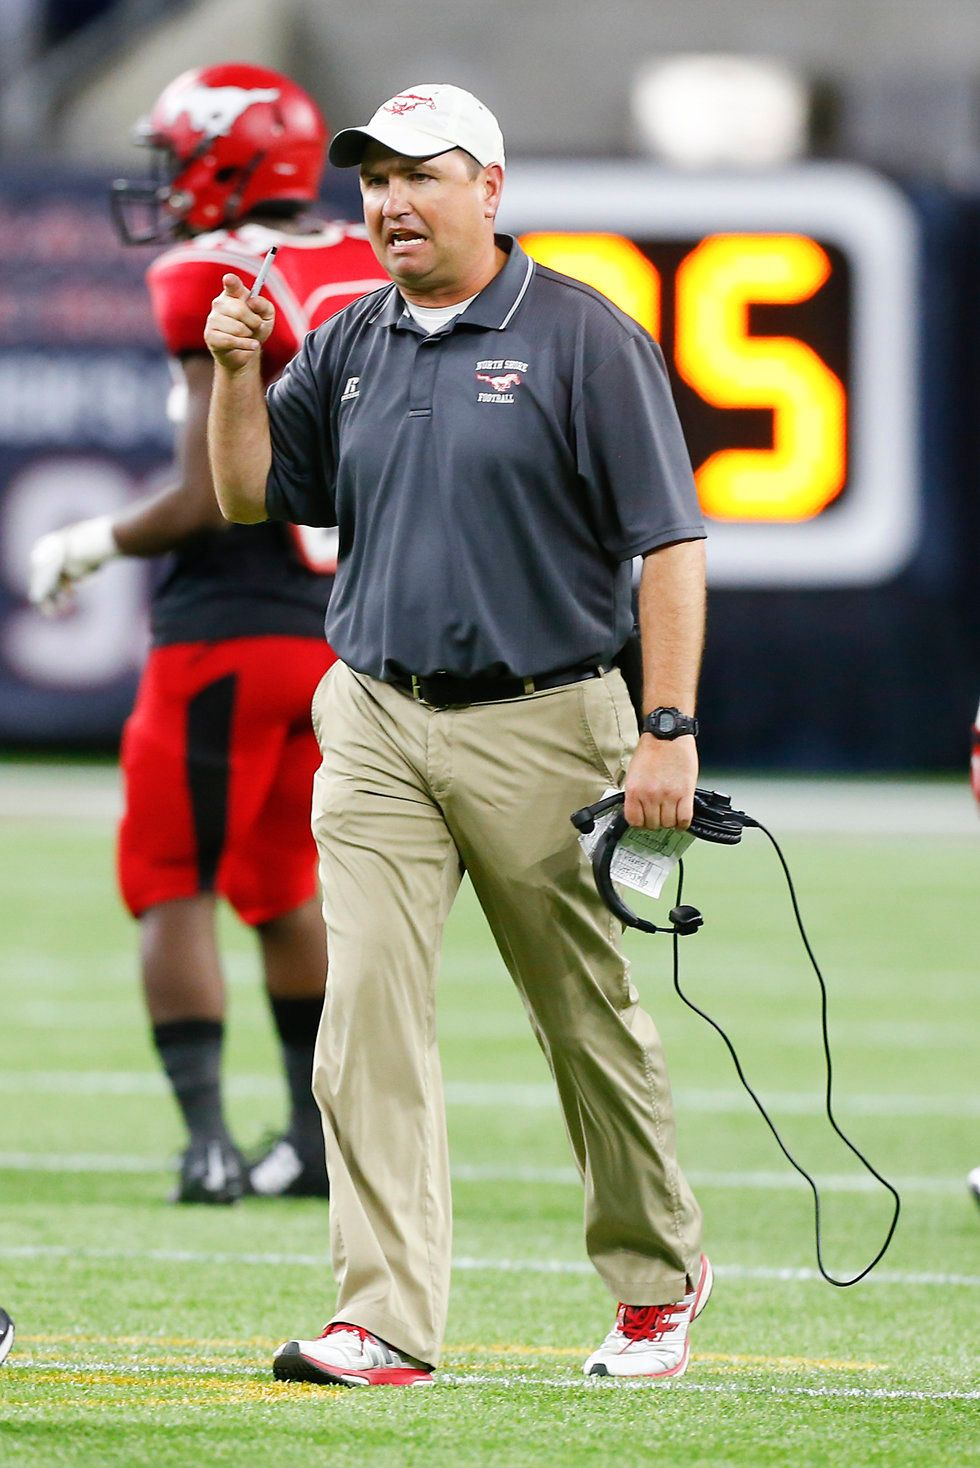 THE GENERALS: Houston's Top 10 trending coaches - VYPE